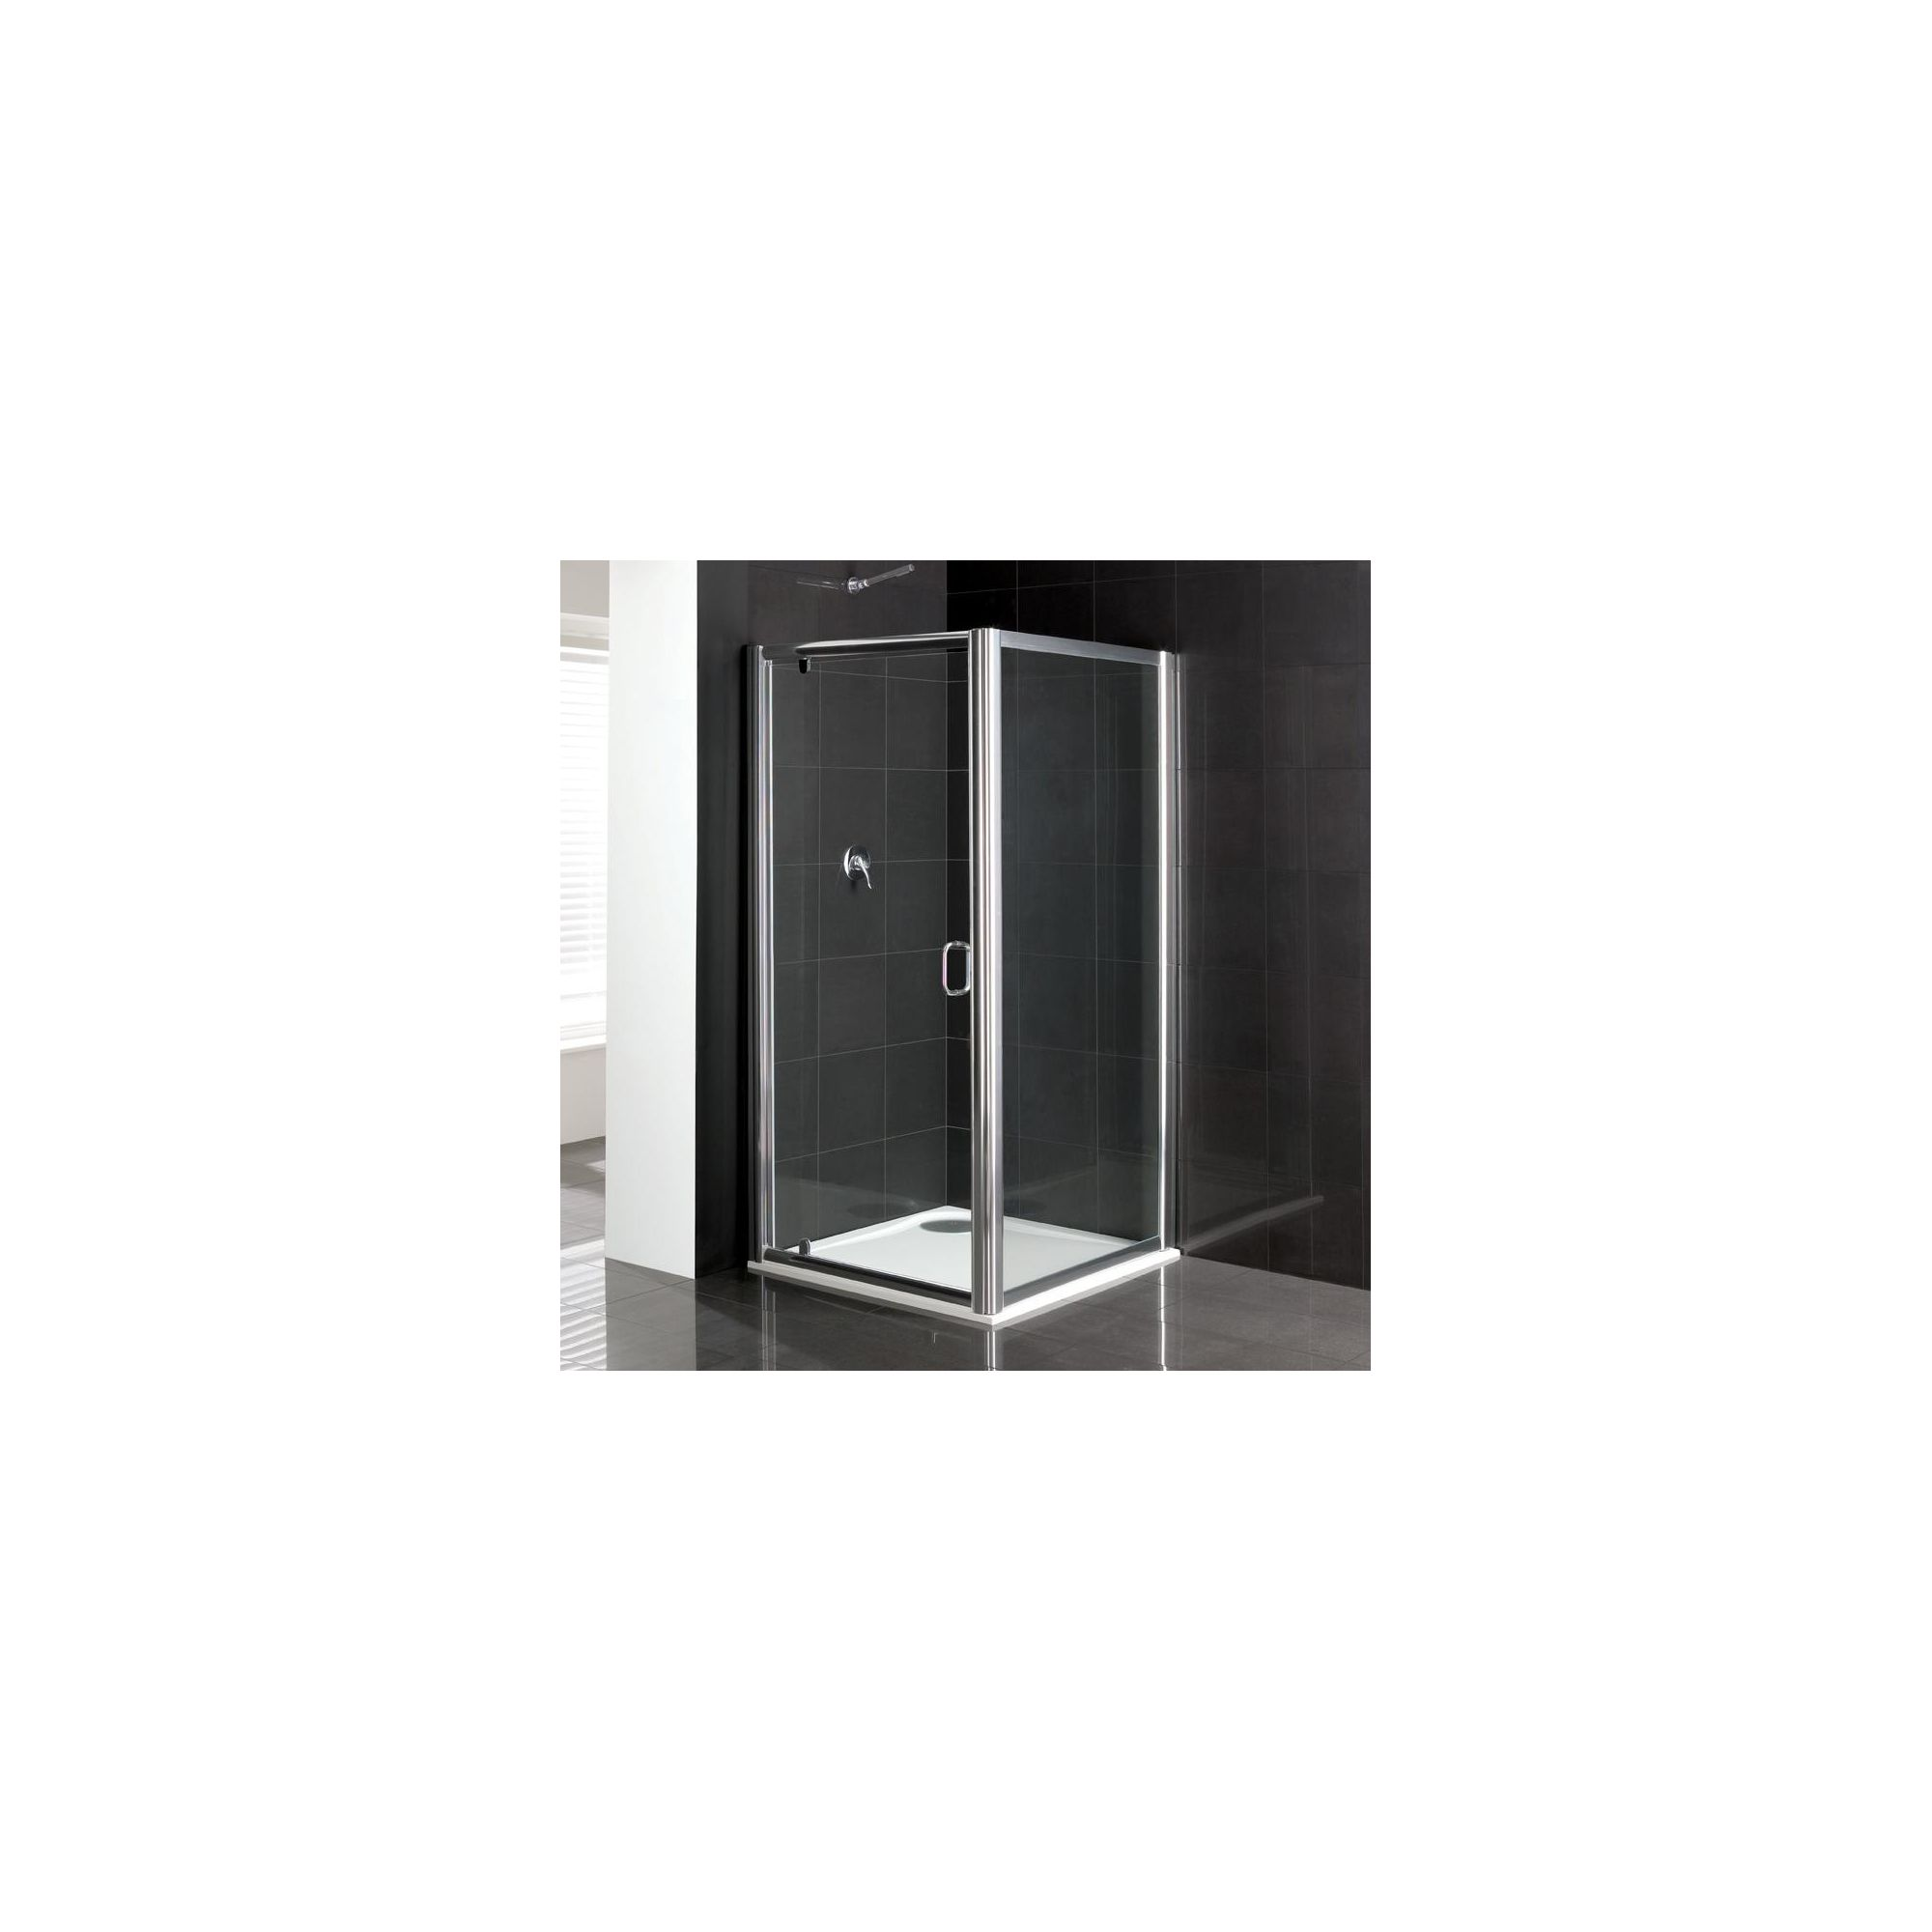 Duchy Elite Silver Pivot Door Shower Enclosure, 900mm x 800mm, Standard Tray, 6mm Glass at Tesco Direct